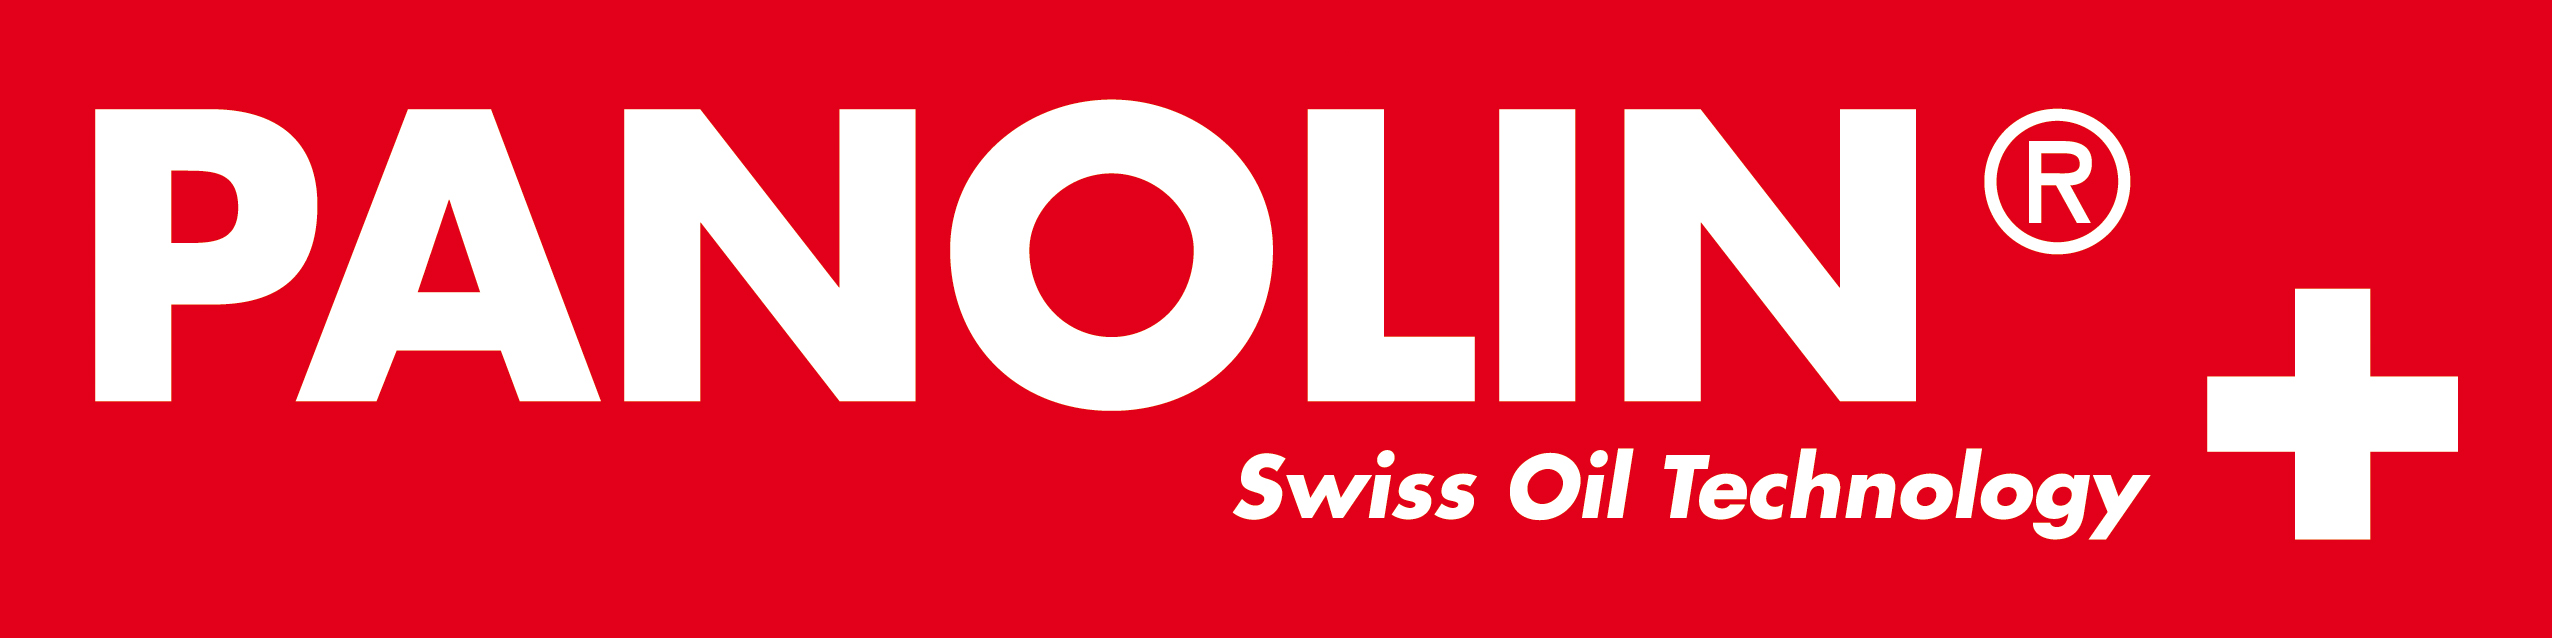 PANOLIN Swiss Oil Technology